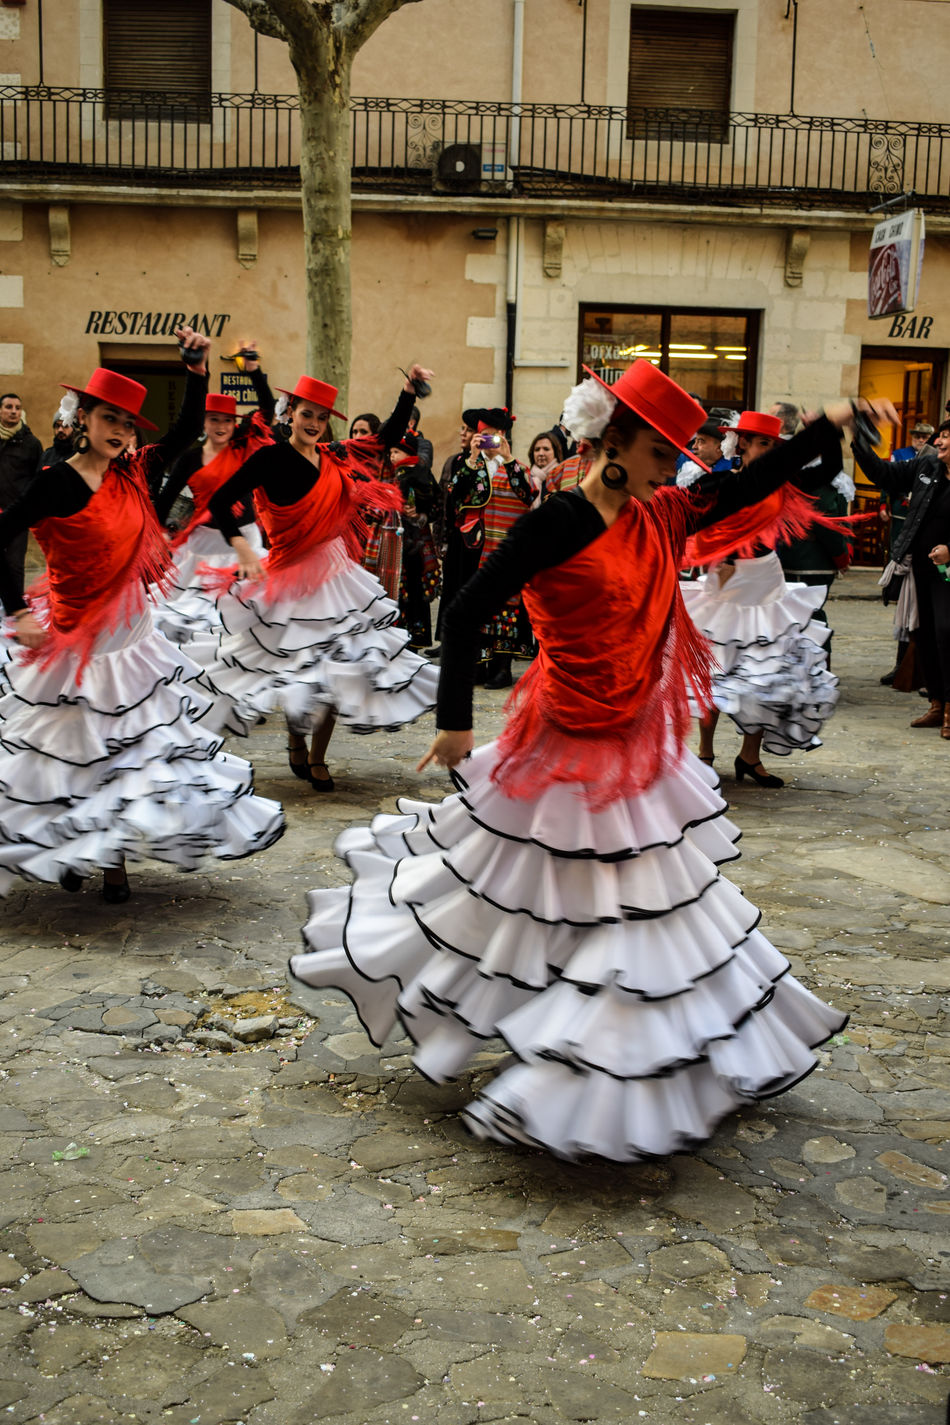 Traditional Clothing Outdoors Spain🇪🇸 Travelling ✈ Dance ❤ First Eyeem Photo